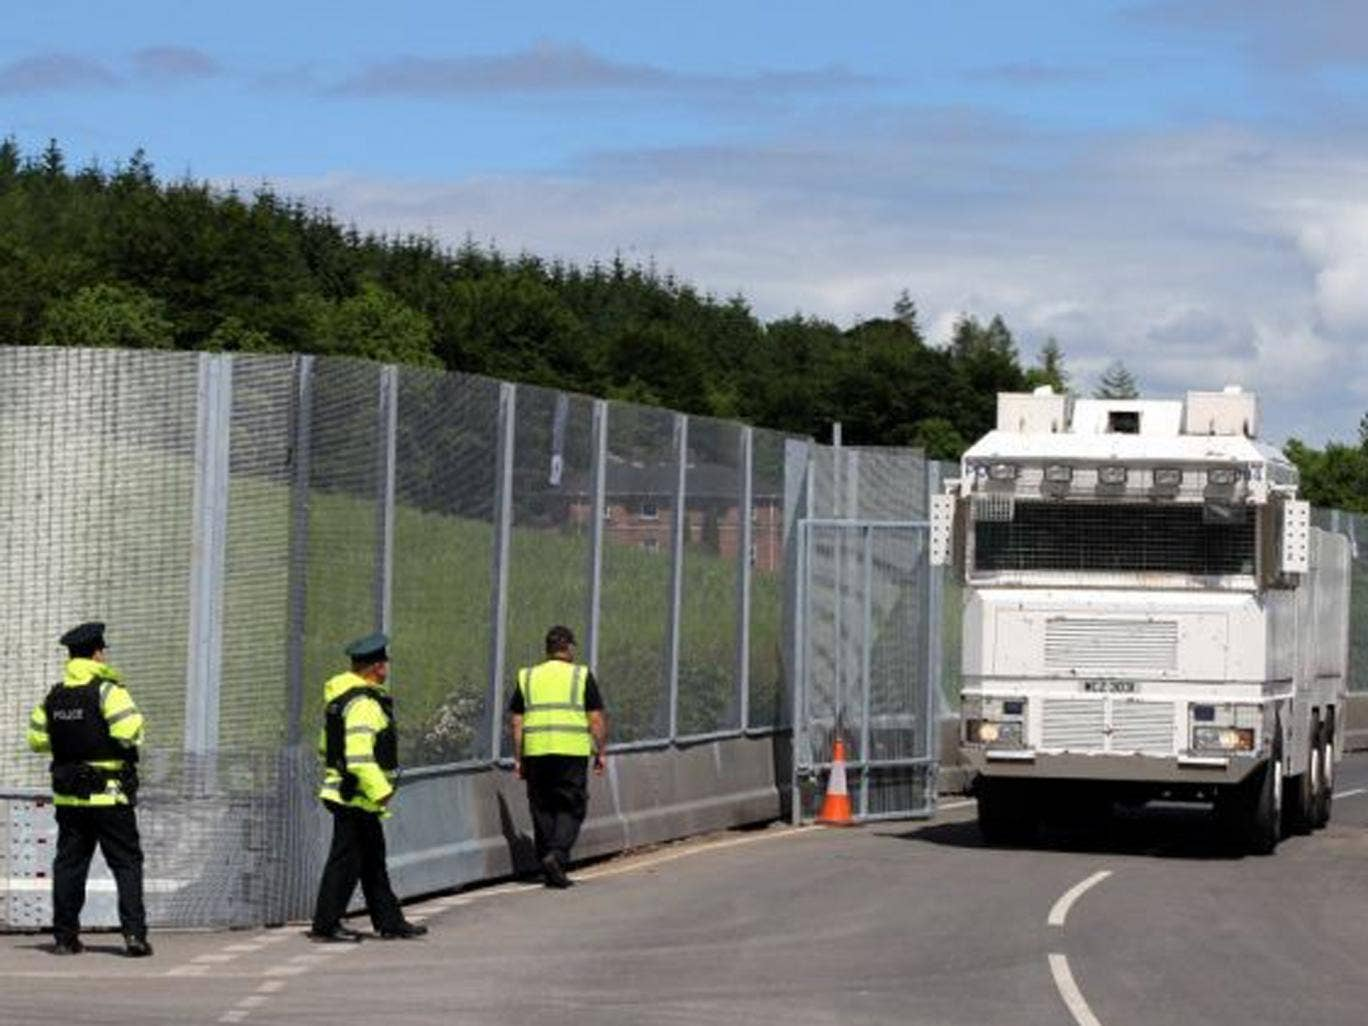 A Water cannon at the main checkpoint and security fence near Lough Erne Hotel resort in Co Fermanagh